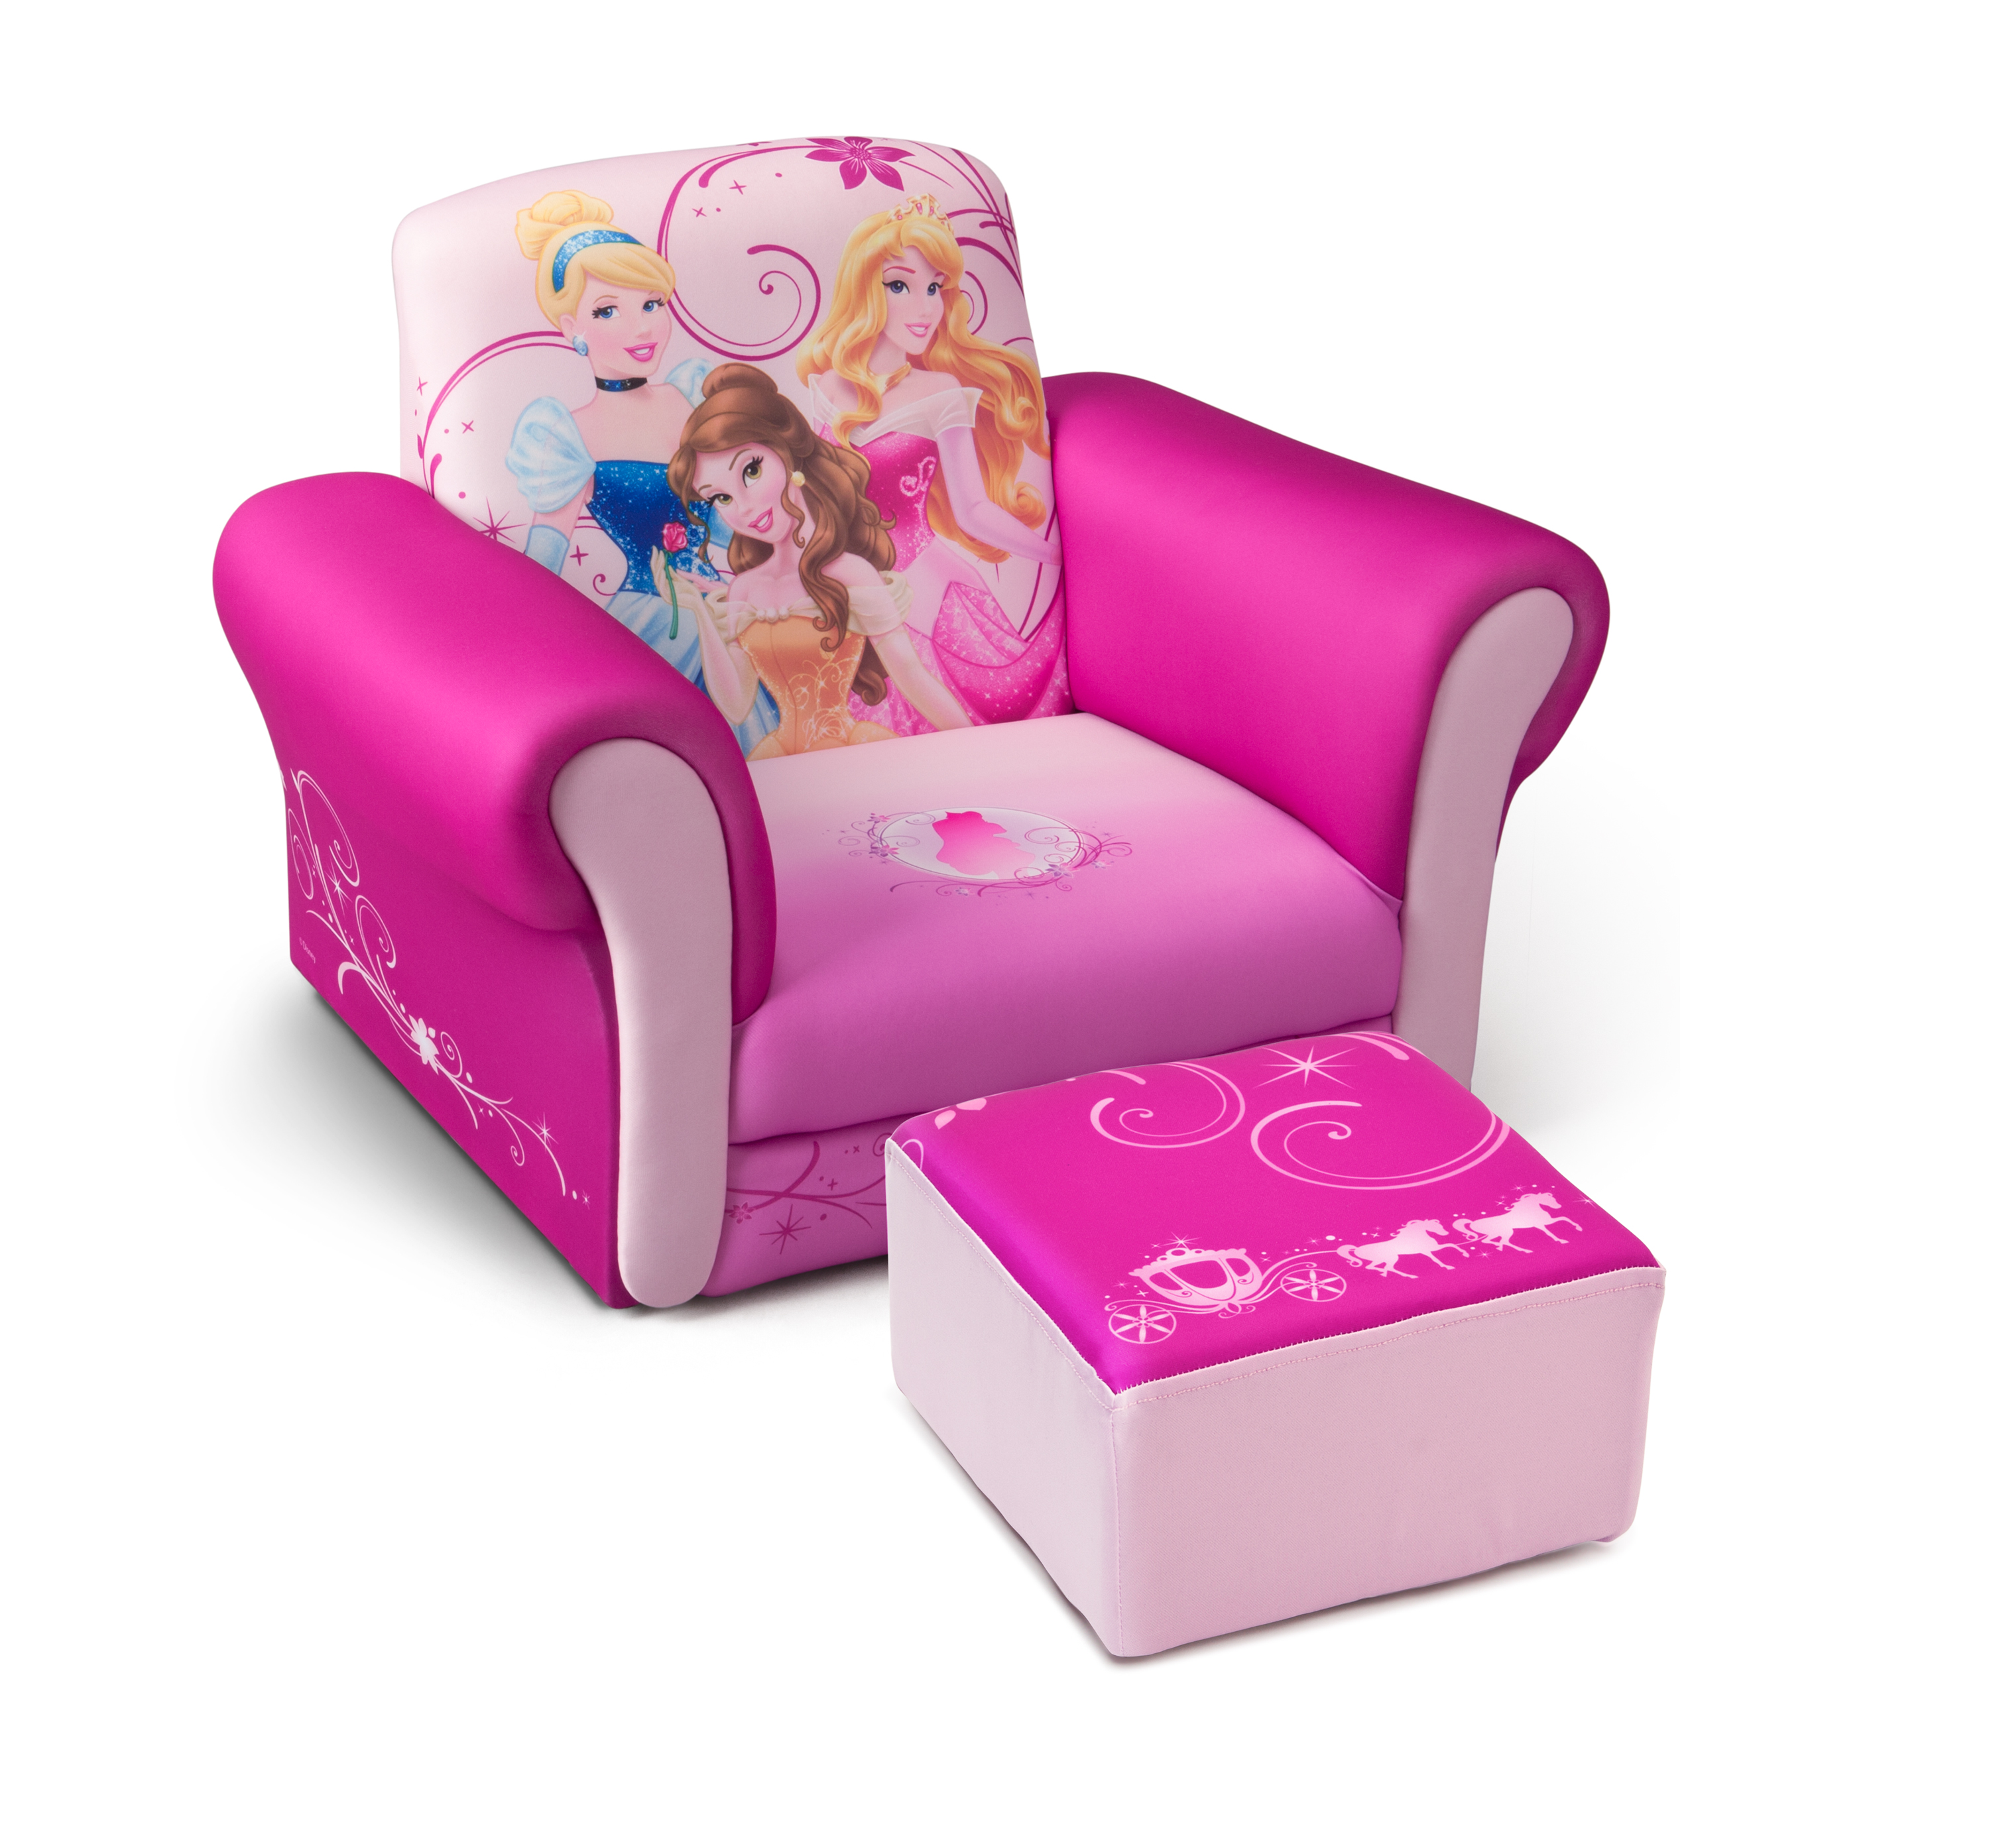 kids chair with ottoman target.com covers delta children disney princess upholstered